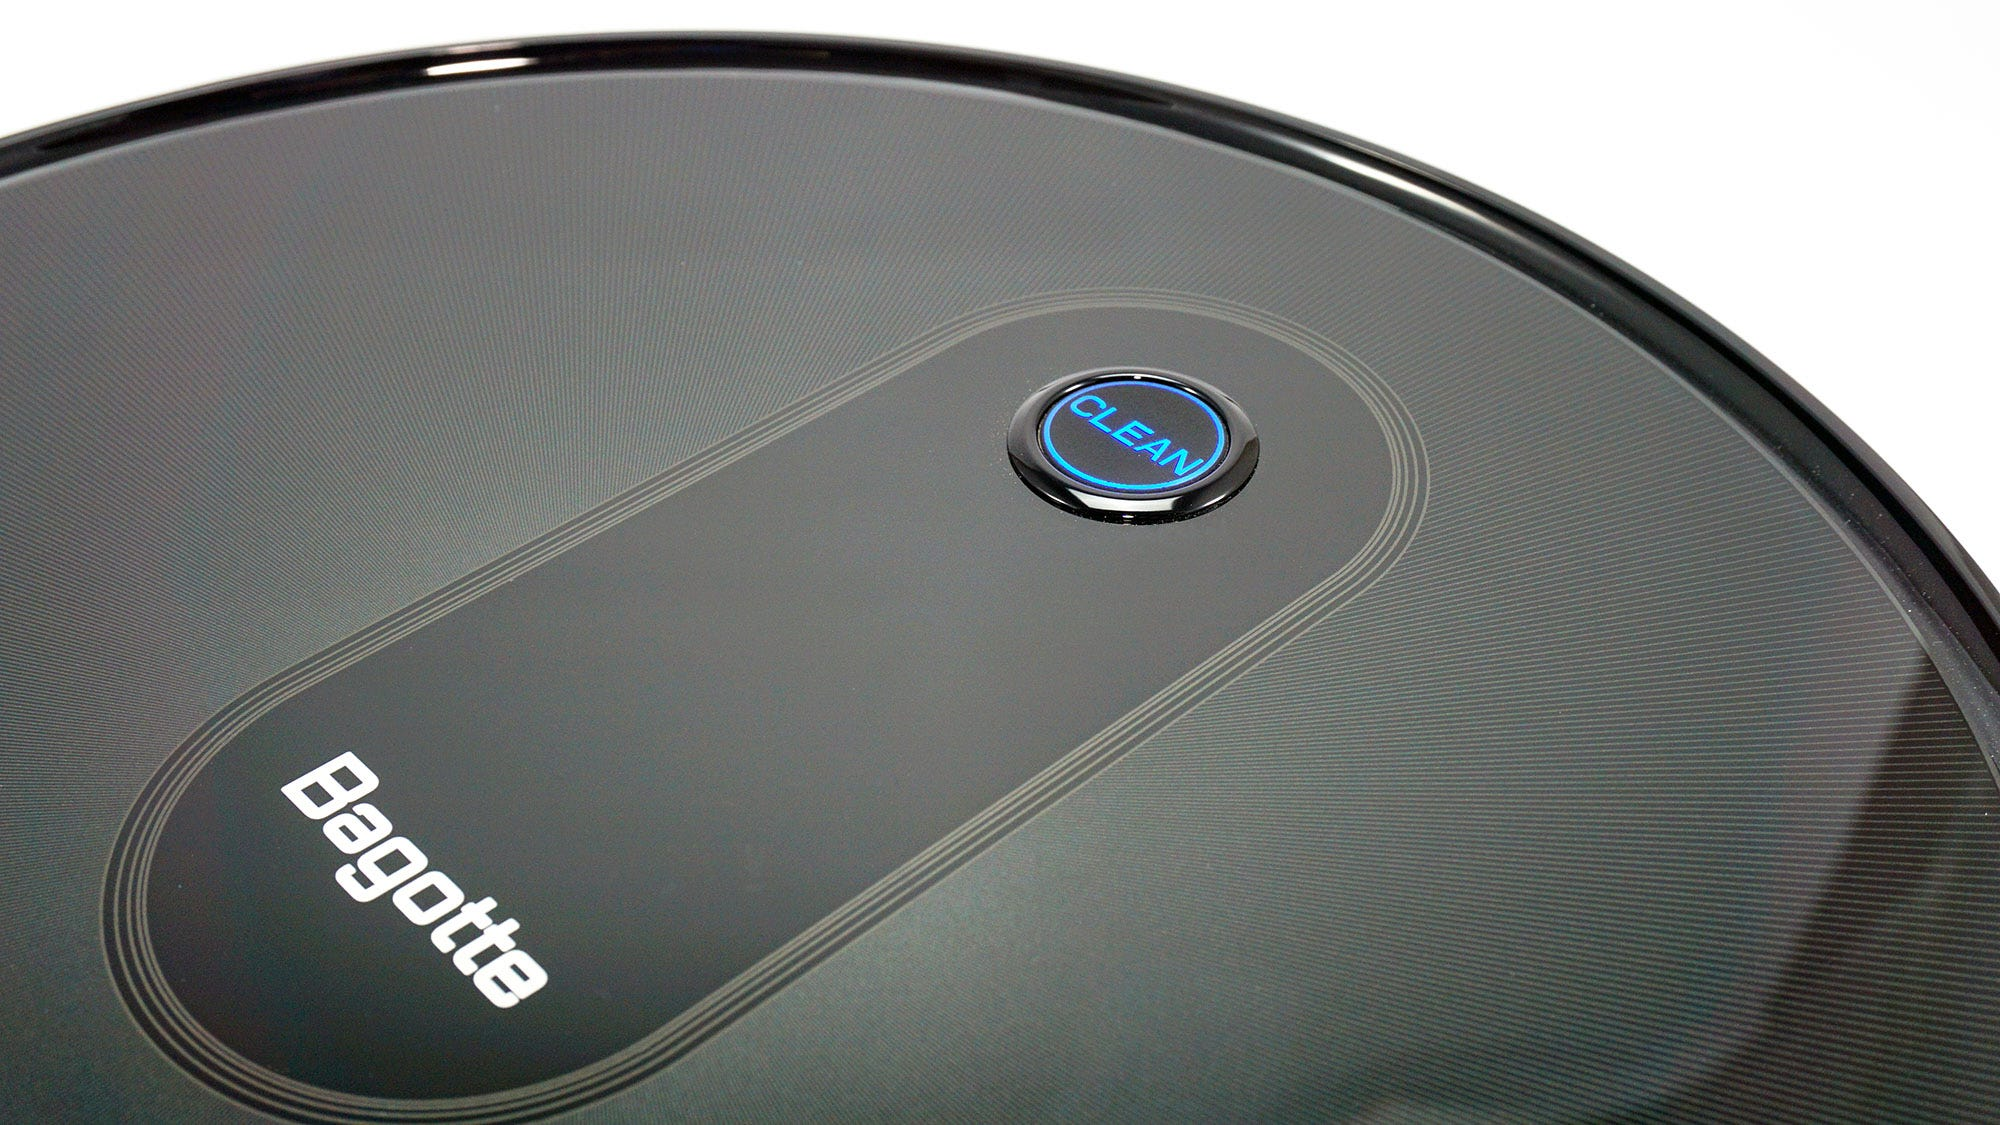 The main button and logo of the BG600.